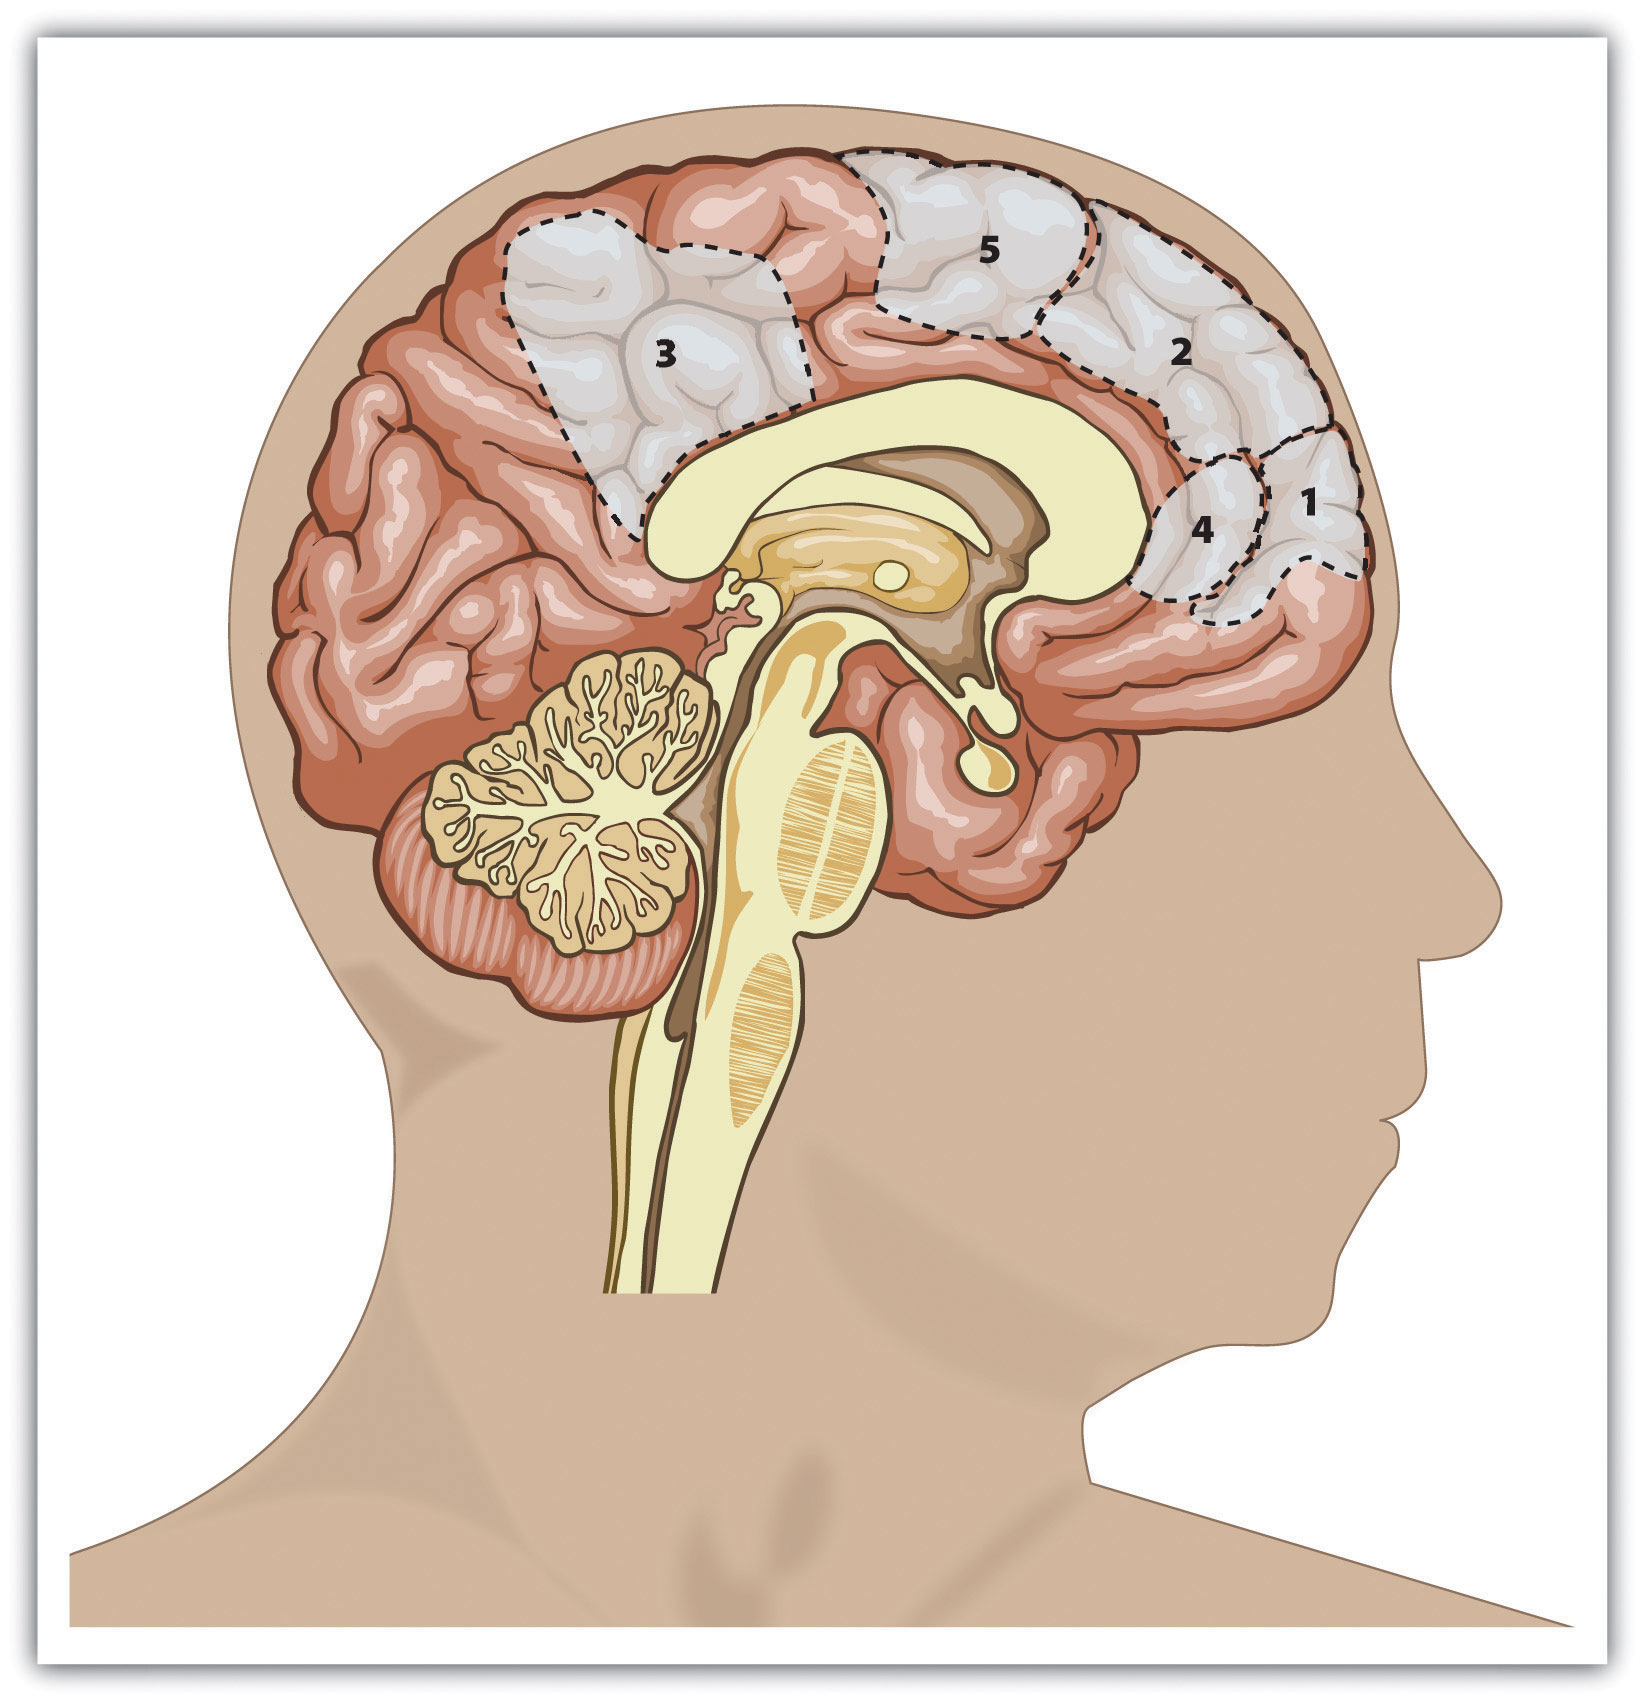 This figure shows the areas of the human brain that are known to be important in processing information about the self. They include primarily areas of the prefrontal cortex (areas 1, 2, 4, and 5).